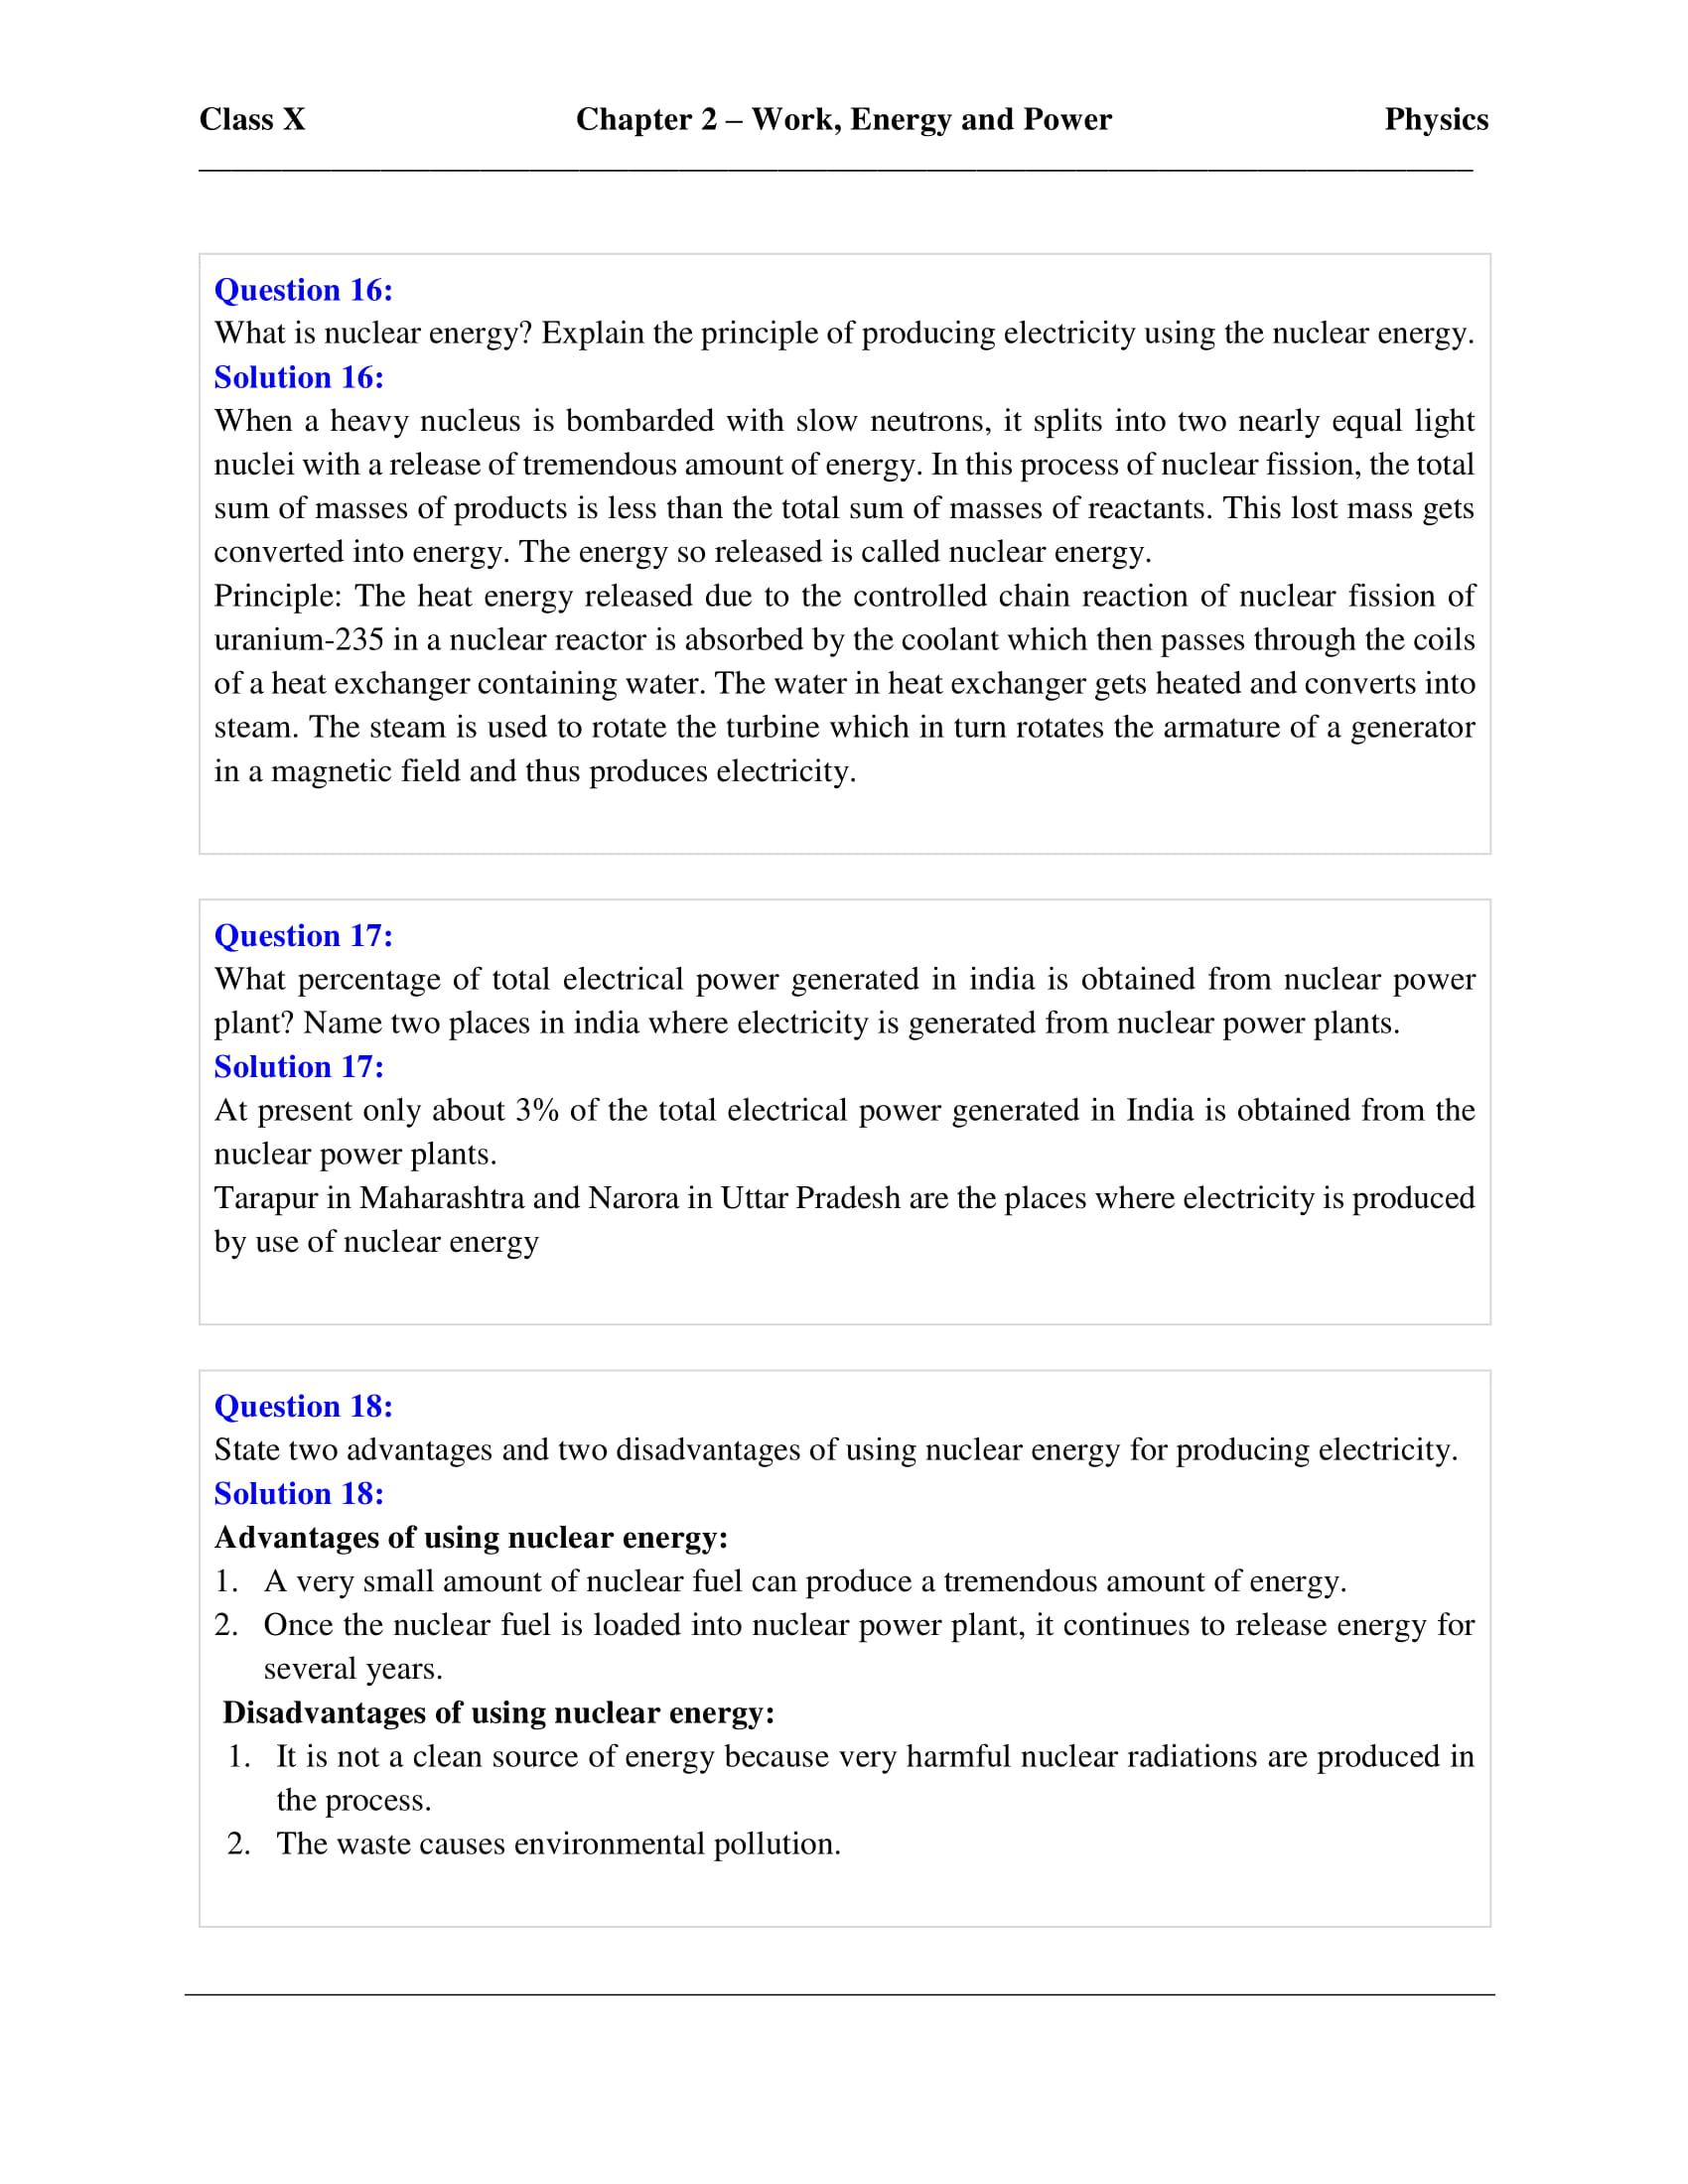 icse-selina-physics-solutions-class-10-chapter-2-work-energy-and-power-38